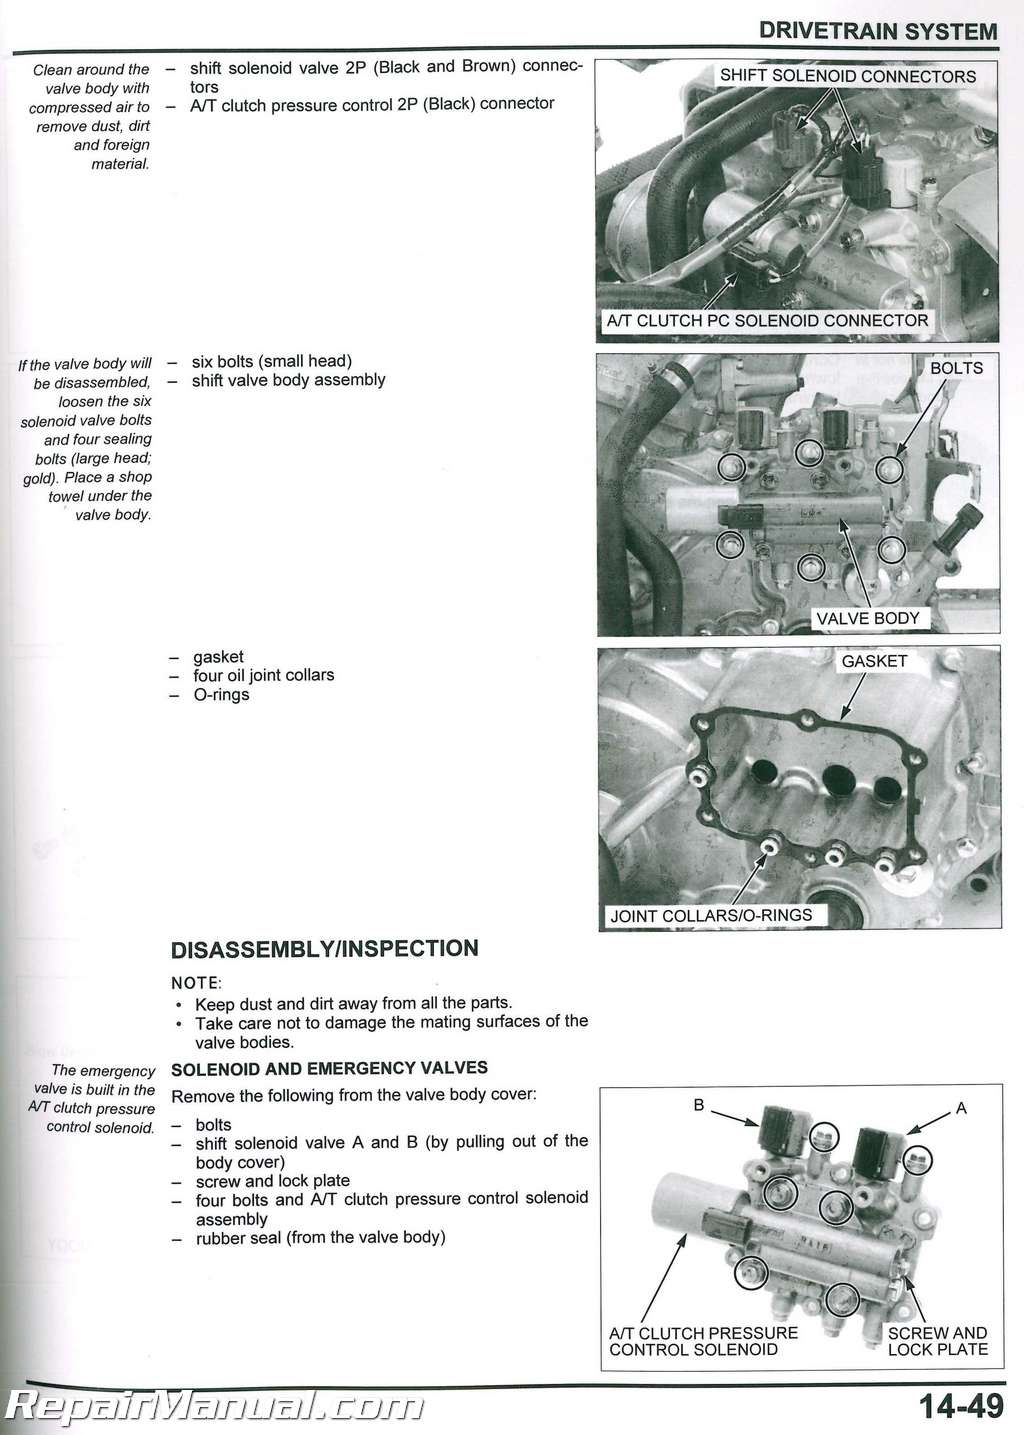 alternator wiring diagram free 84 toyota pickup alternator wiring diagram free picture